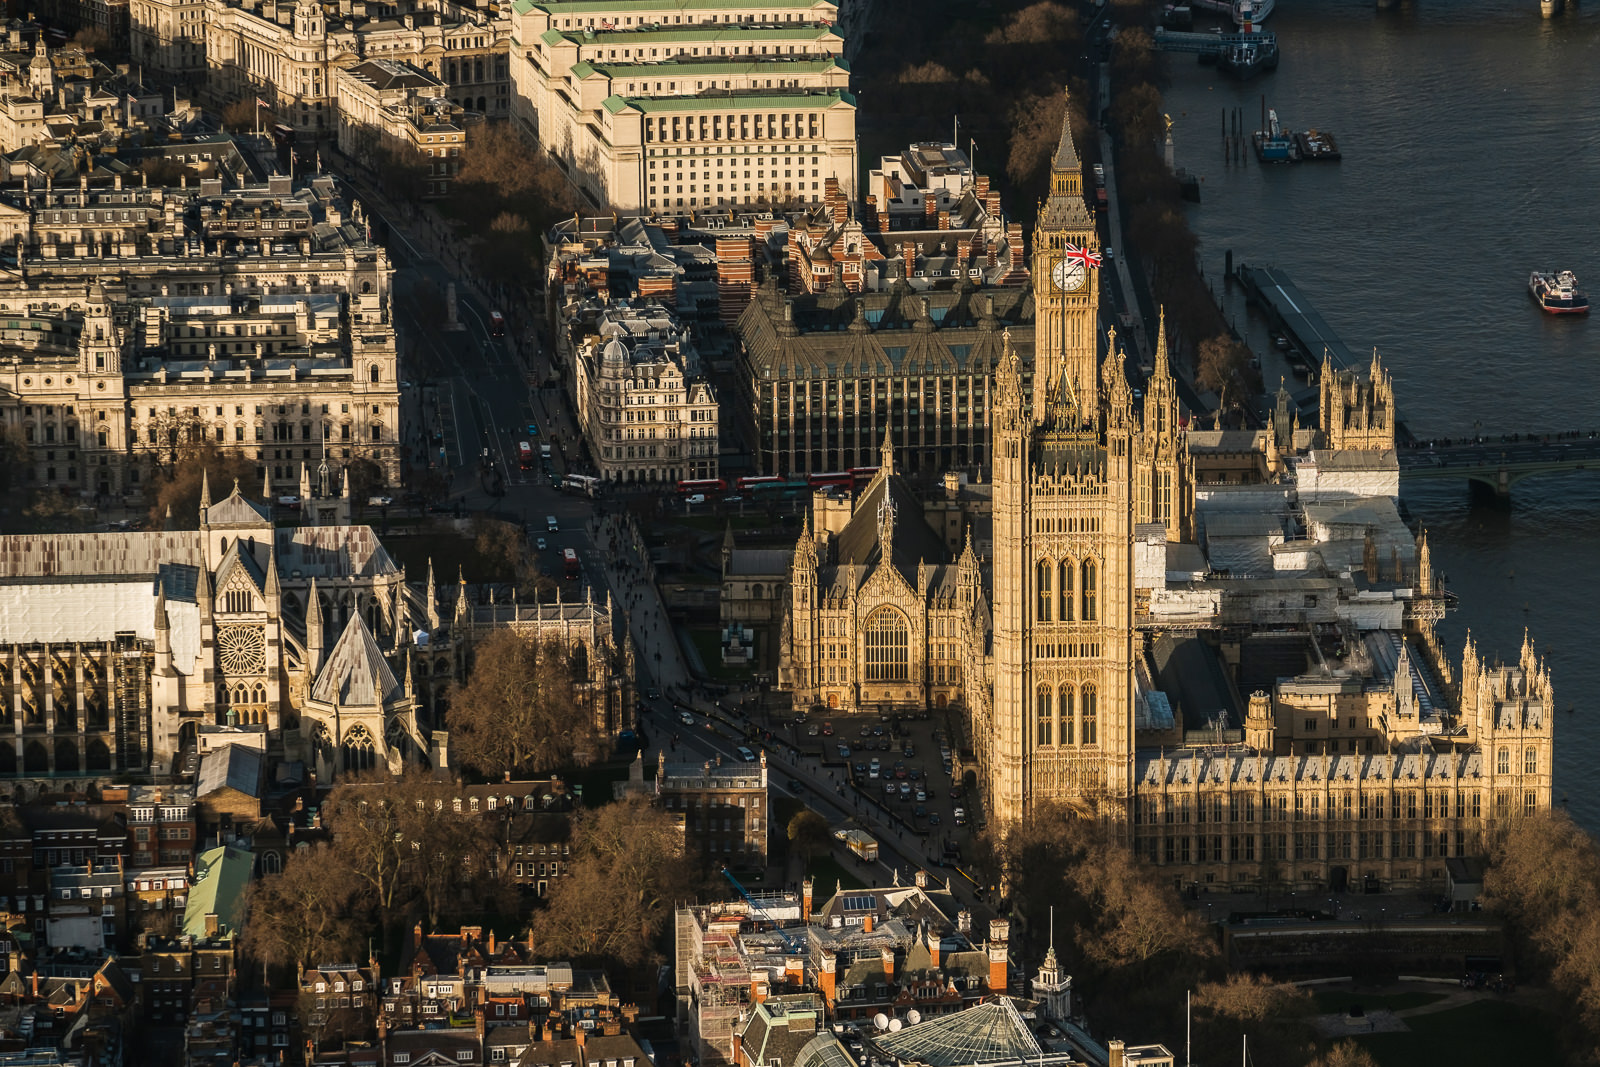 Palace of Westminster - House of Parliament; X-T2 ISO200 50-140mm f3.6 1/1000s